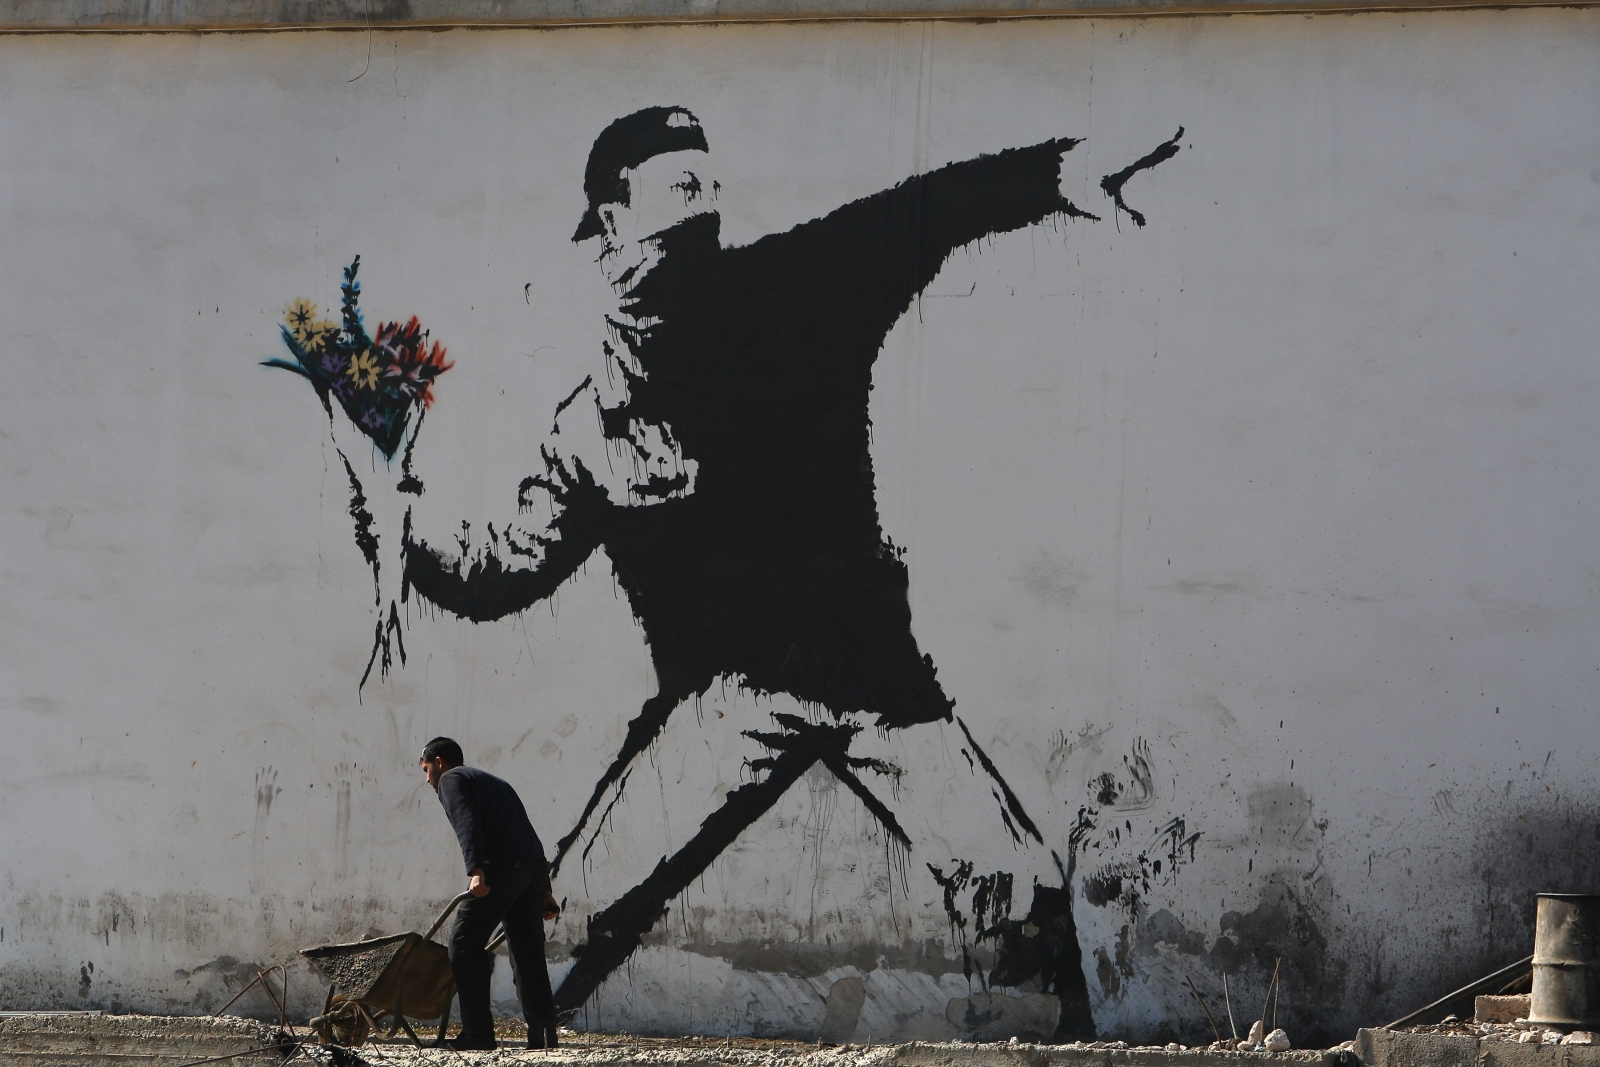 hoax 39 banksy arrested in london 39 story dupes the internet. Black Bedroom Furniture Sets. Home Design Ideas